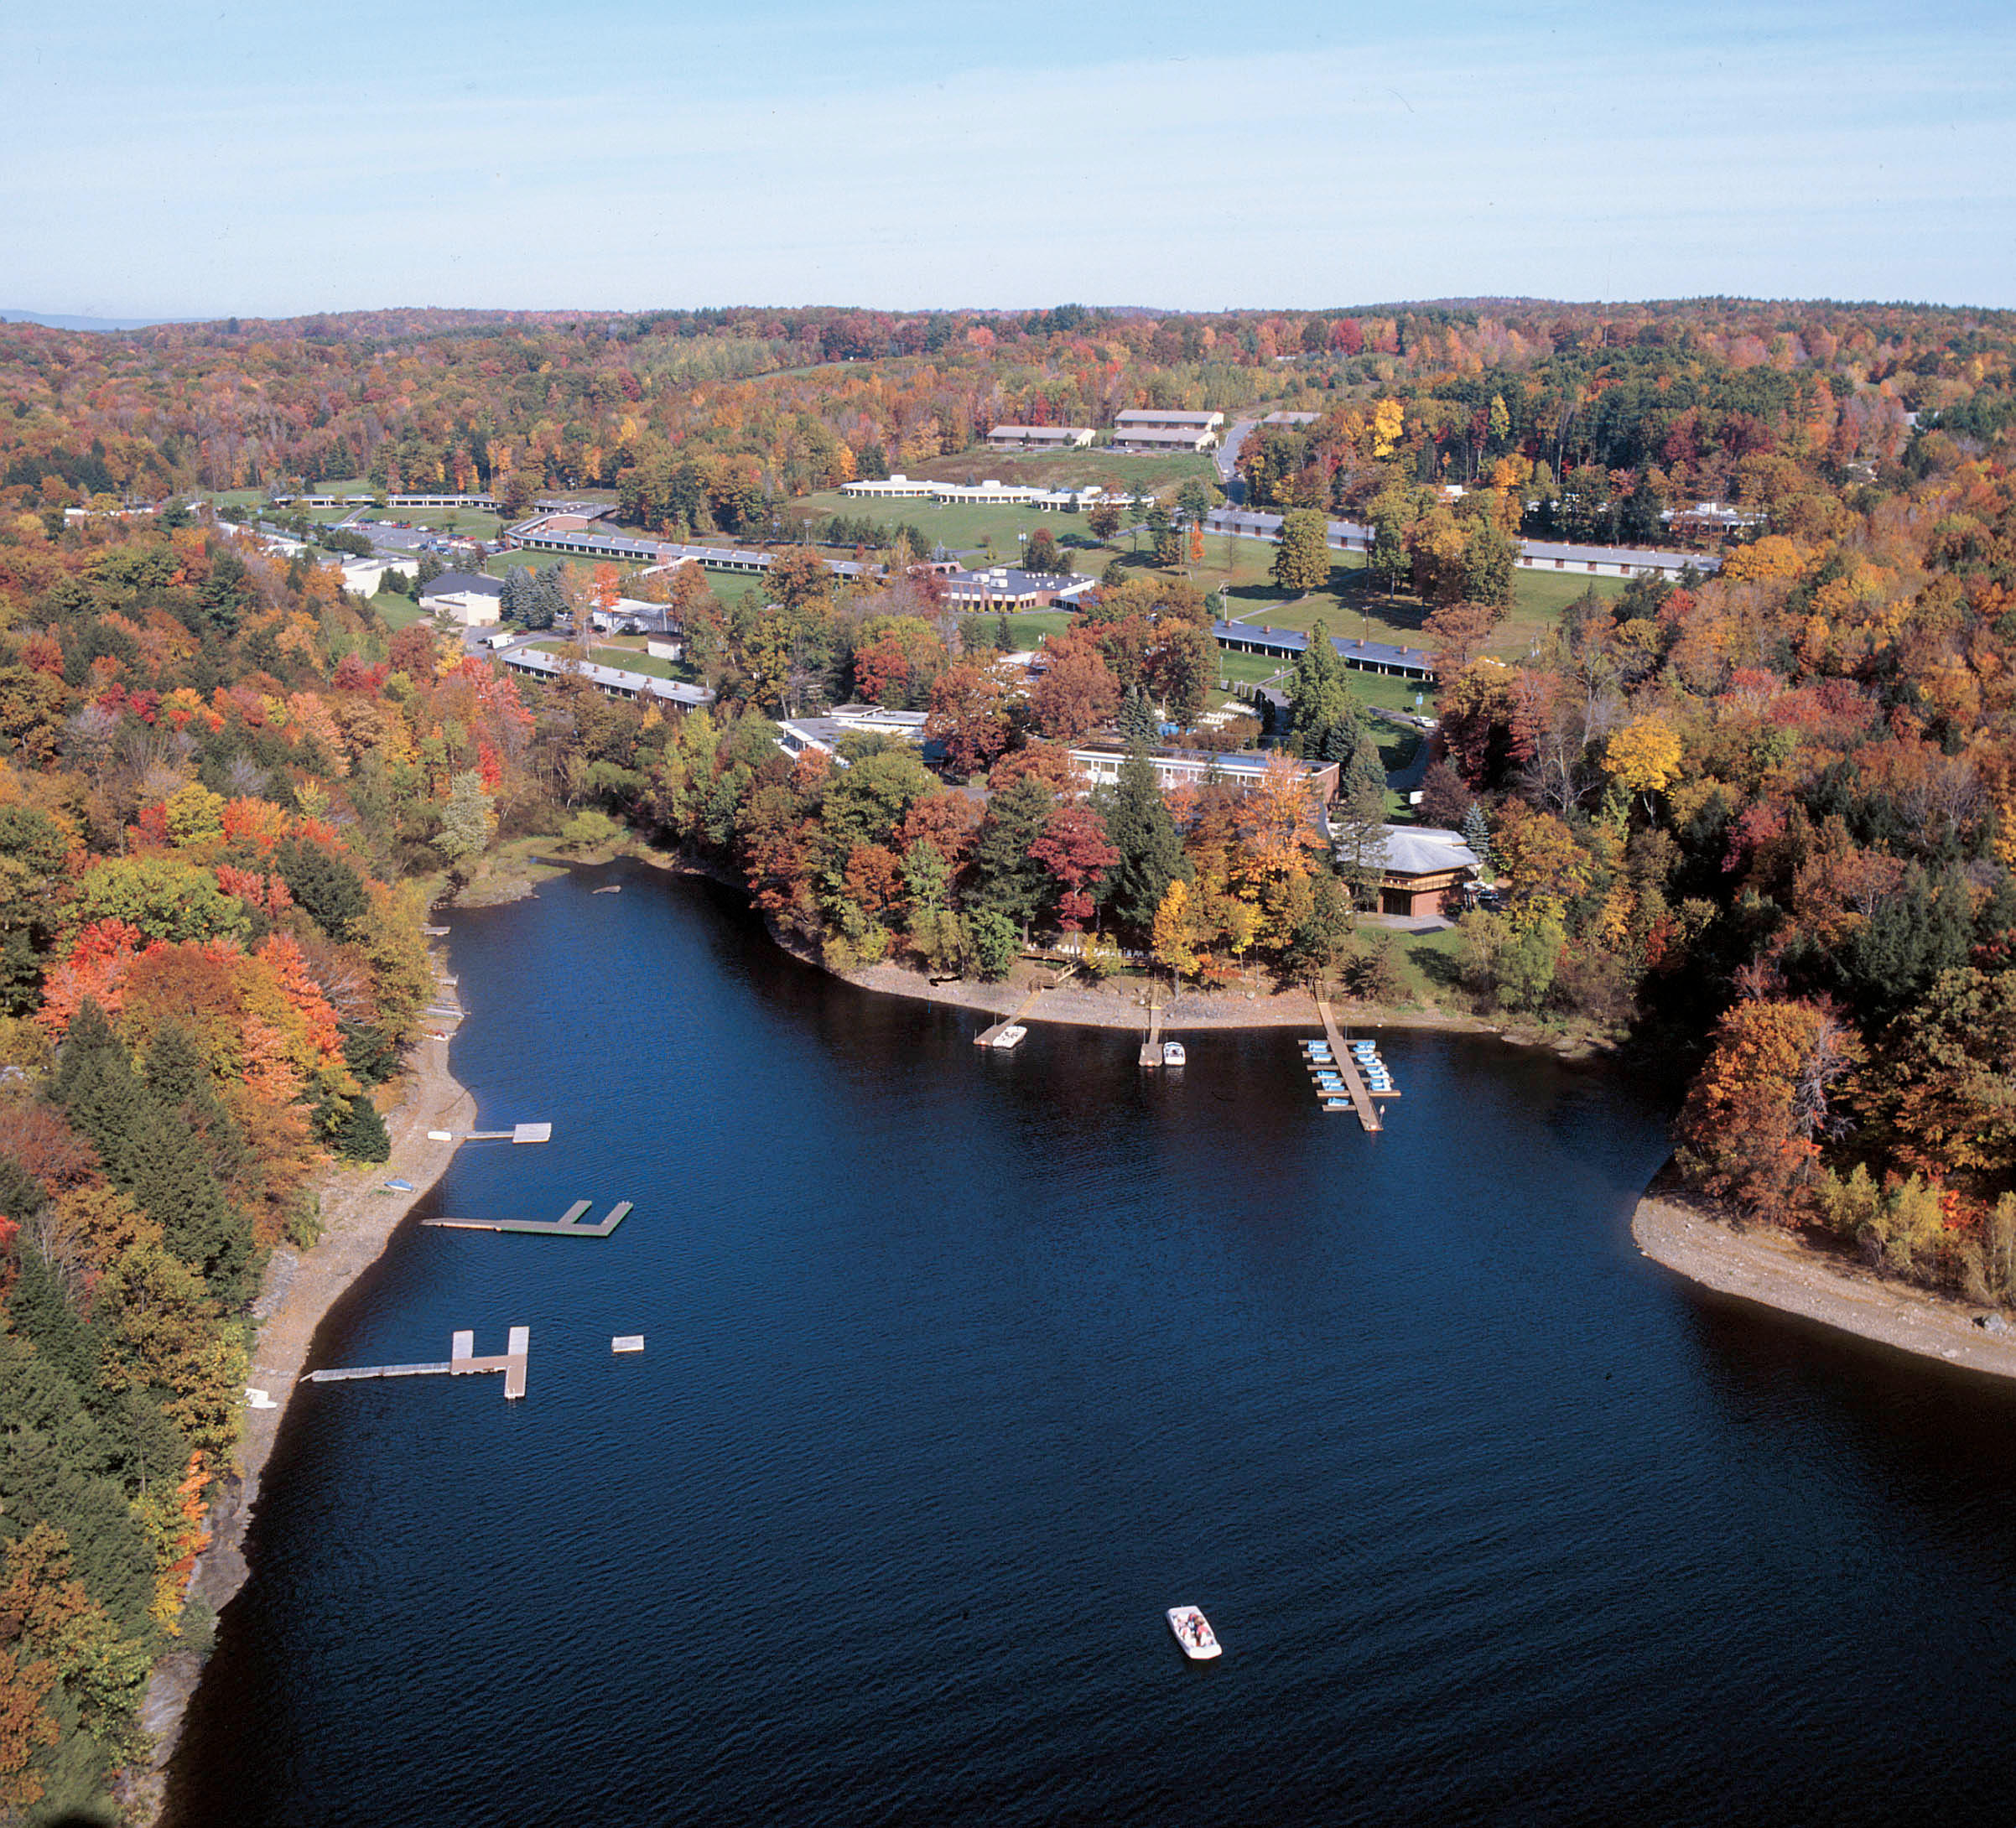 Us Map States Mapquest%0A Cove Haven Resort     Lakeview Dr Lakeville  PA Hotels  u     Motels  MapQuest